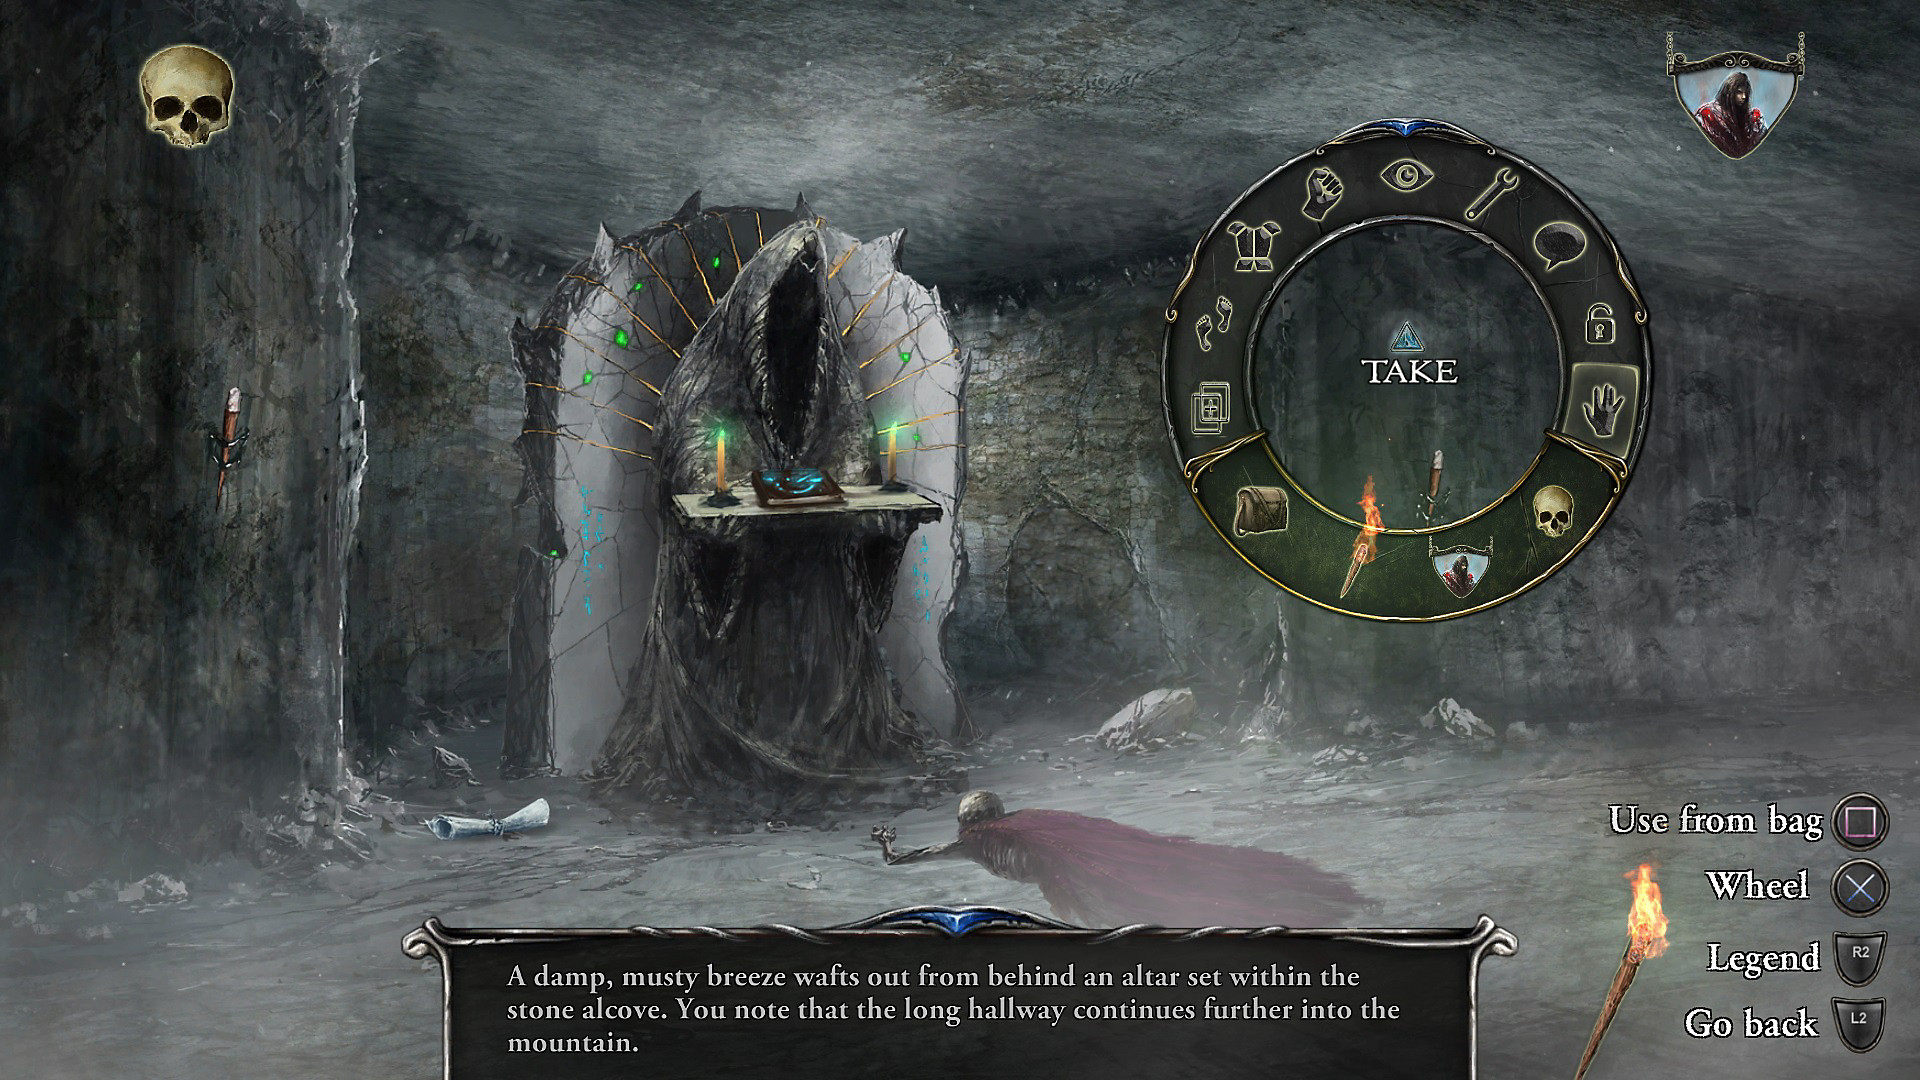 shadowgate-screenshot-01-ps4-us-11apr2019.jpg